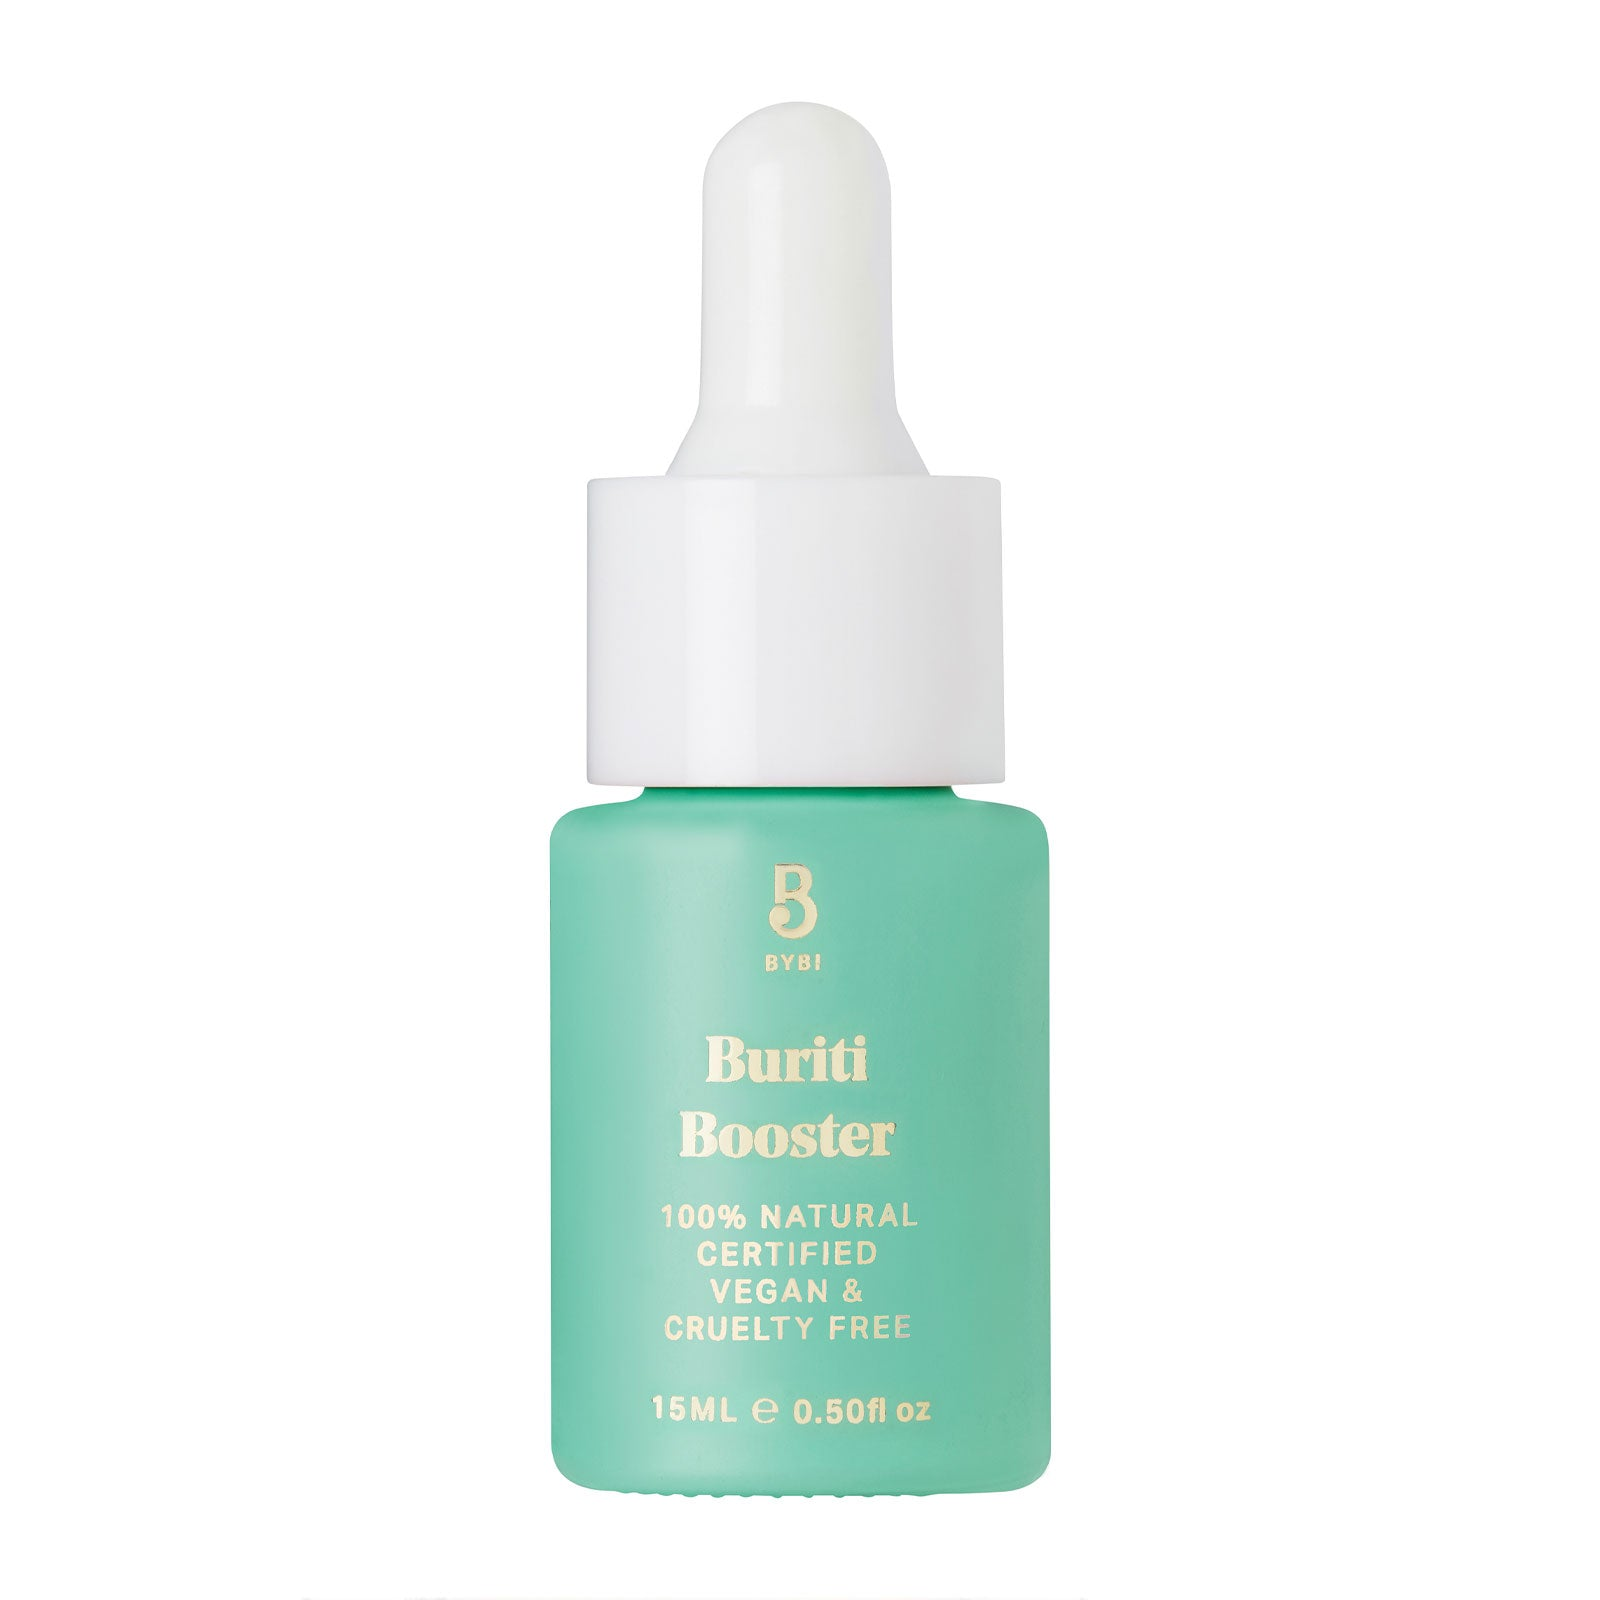 BYBI Beauty Buriti Booster 100% Cold Pressed Day Booster 15ml